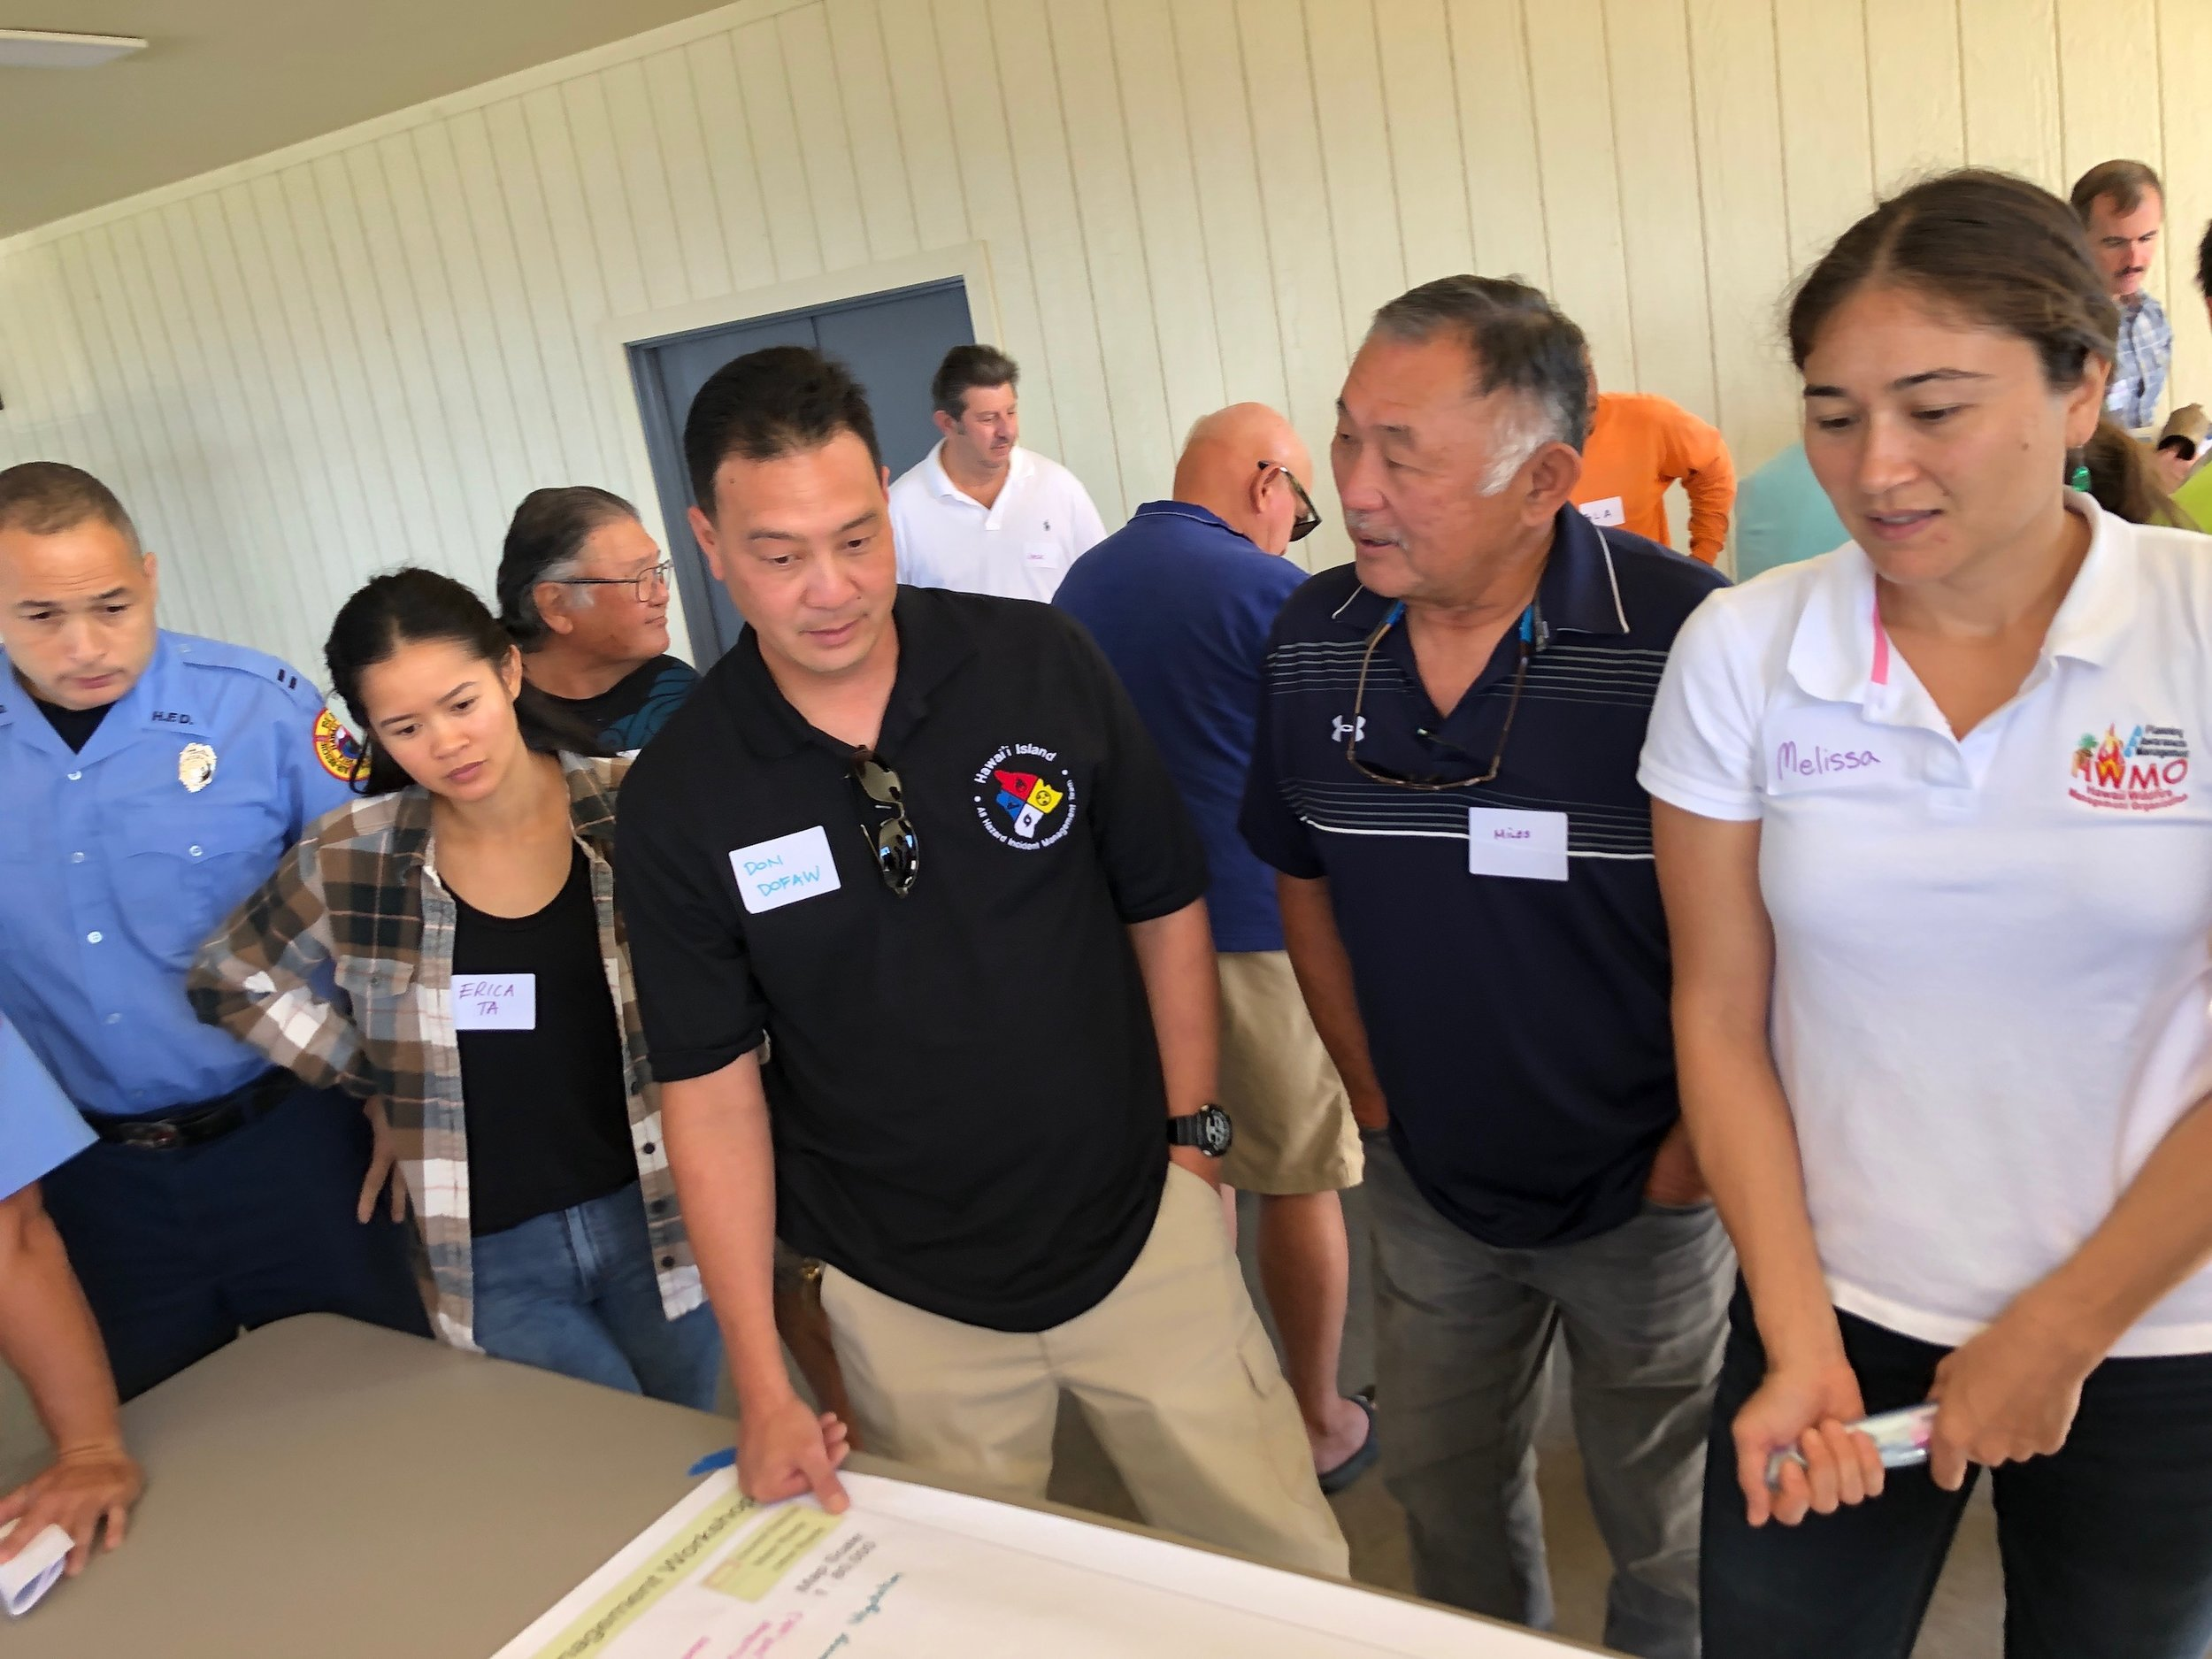 Hawaii Island Kailapa Vegetative Fuels Management Collaborative Action Planning Workshop_2_26_2019_42.jpg